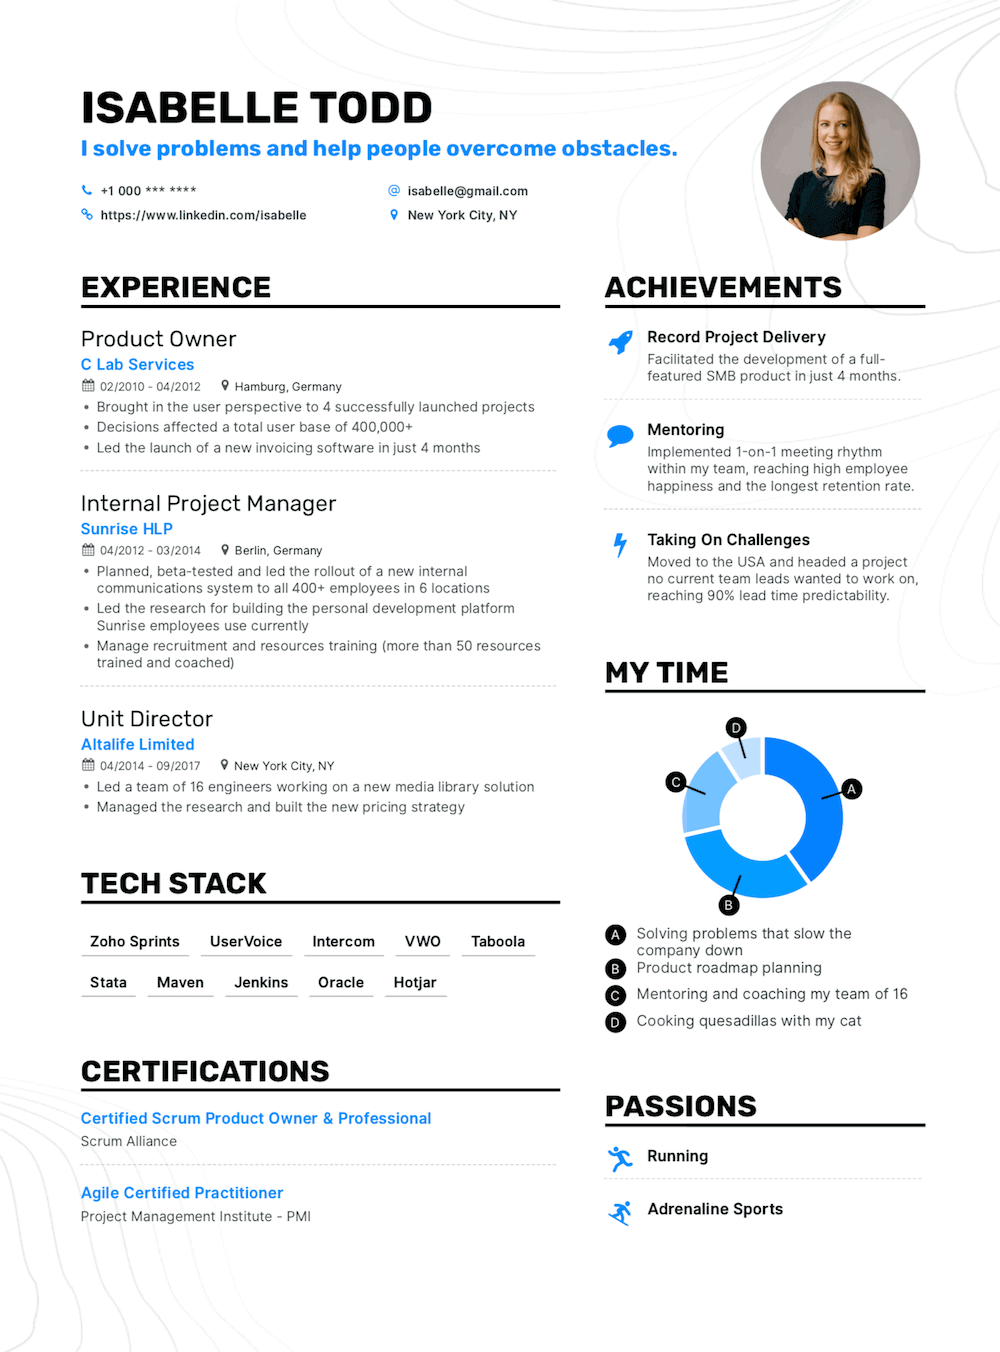 Enhancv 15 Tips to Create an Eye-Catching Resume That Gets You The Job (Including Templates)